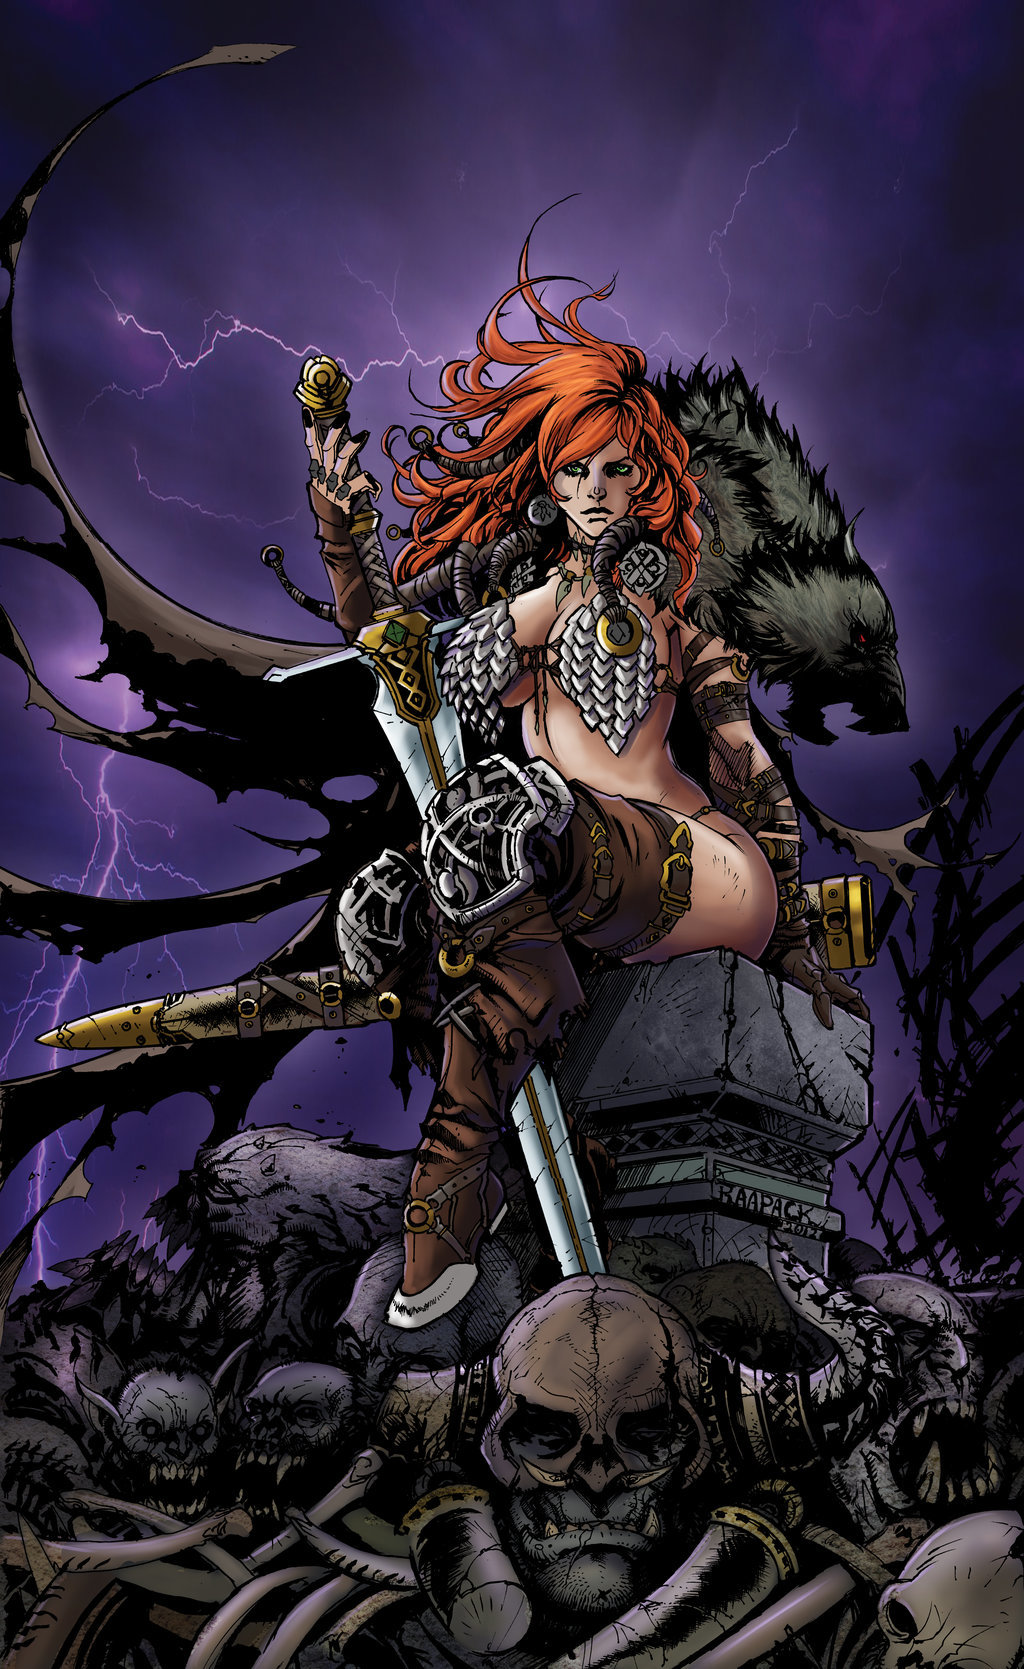 Matt james red sonja queen of steel by mattjamescomicarts d7z7nvo